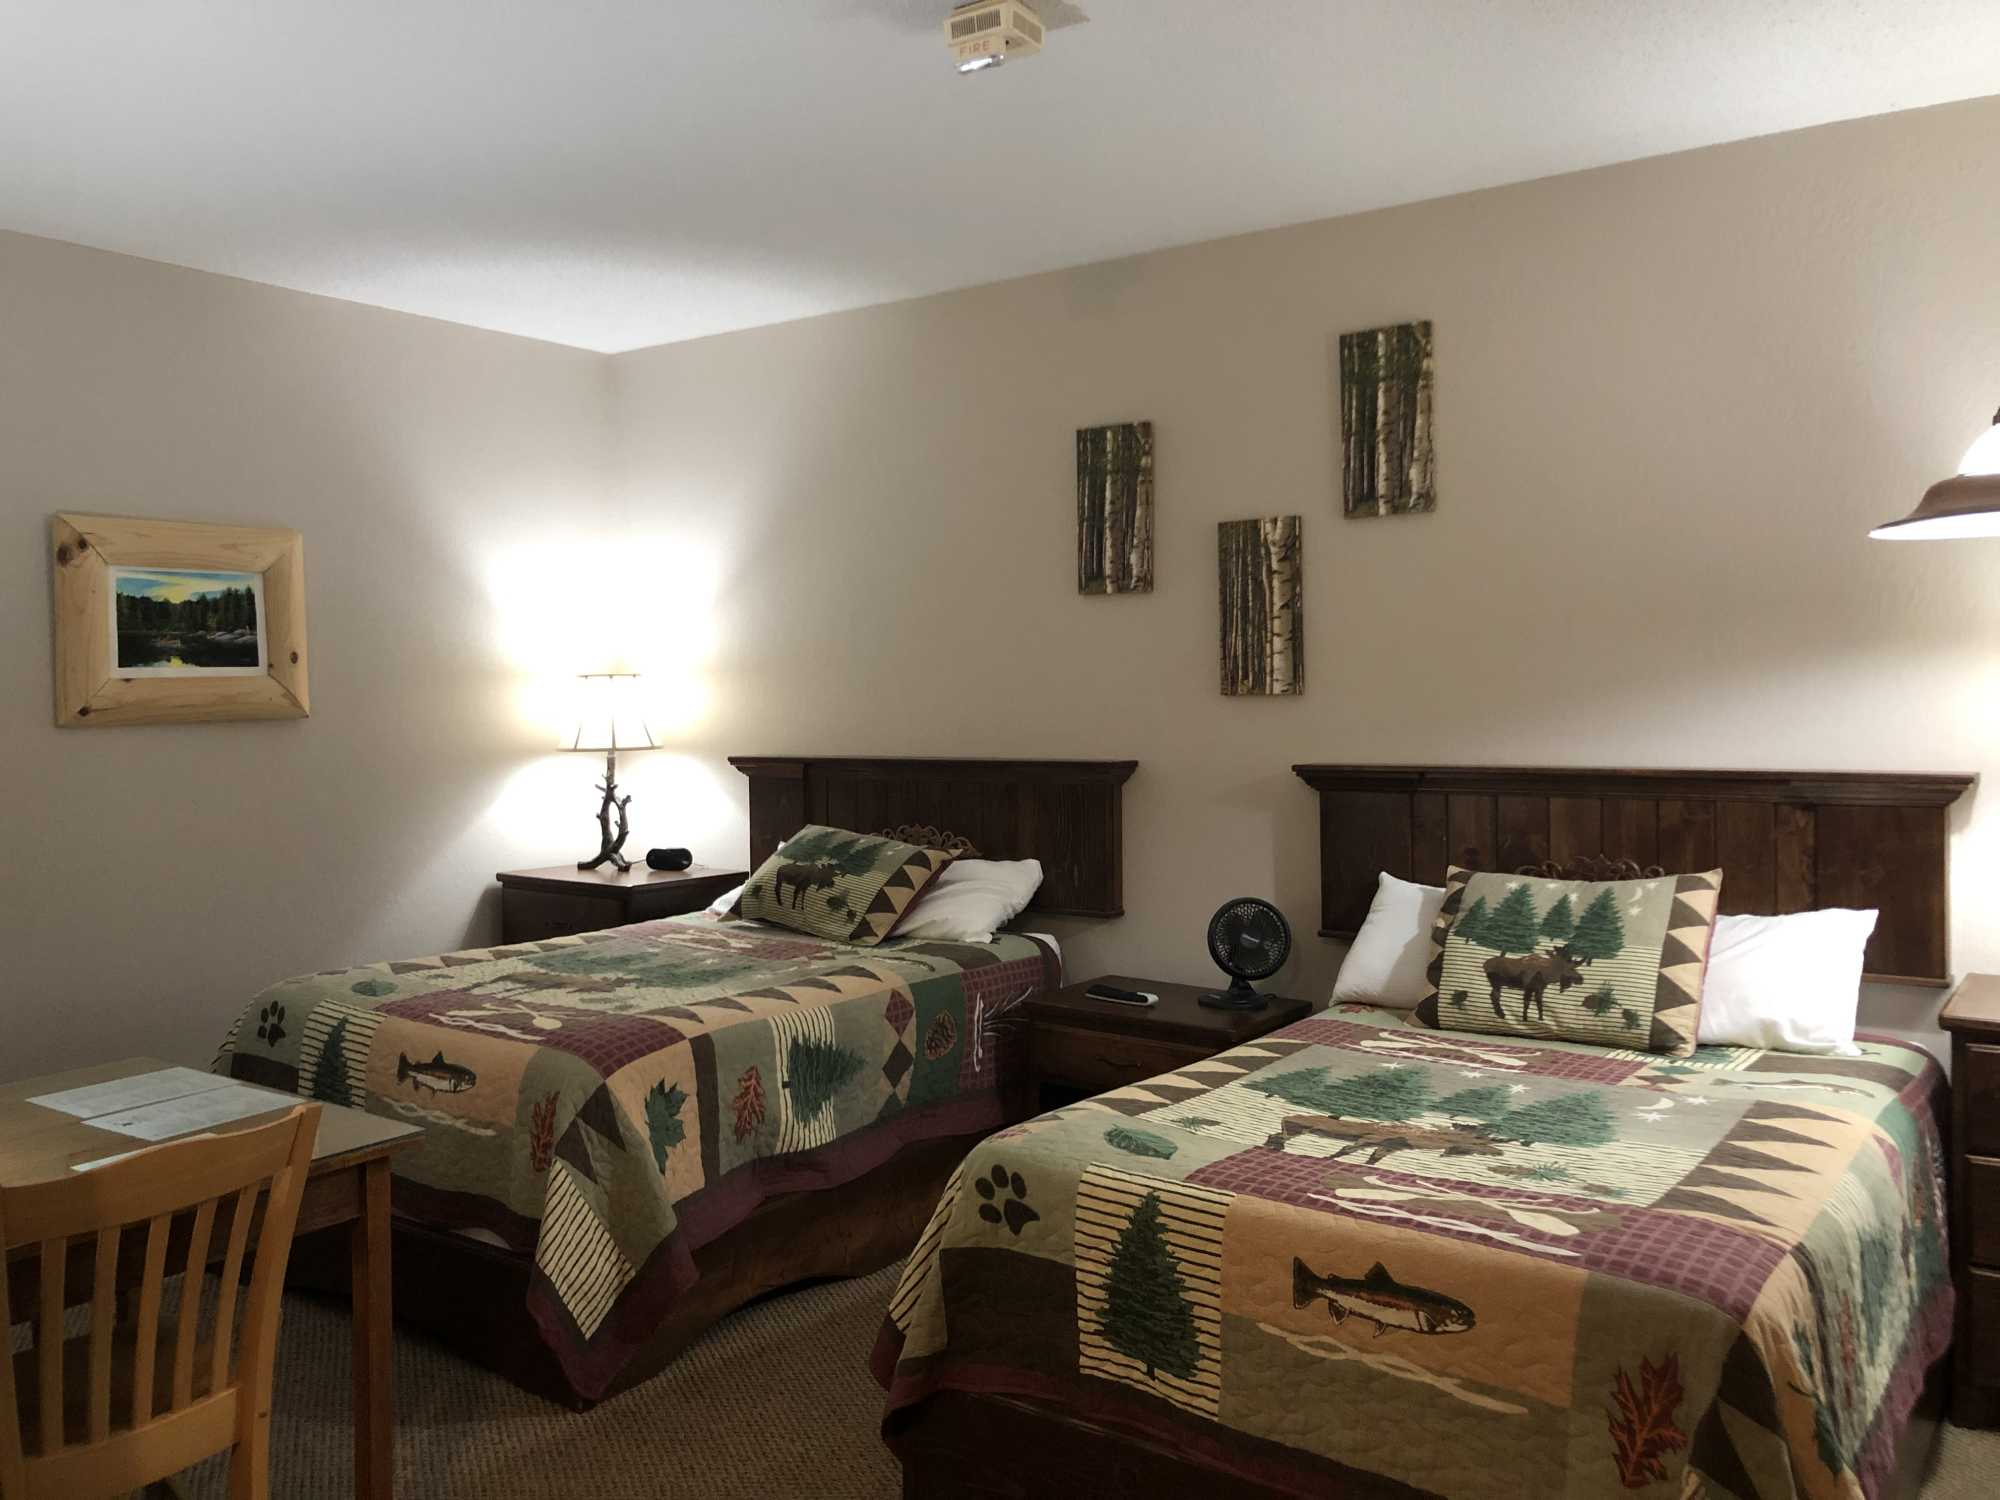 2 Full Size Bed rooms with adjoining doors